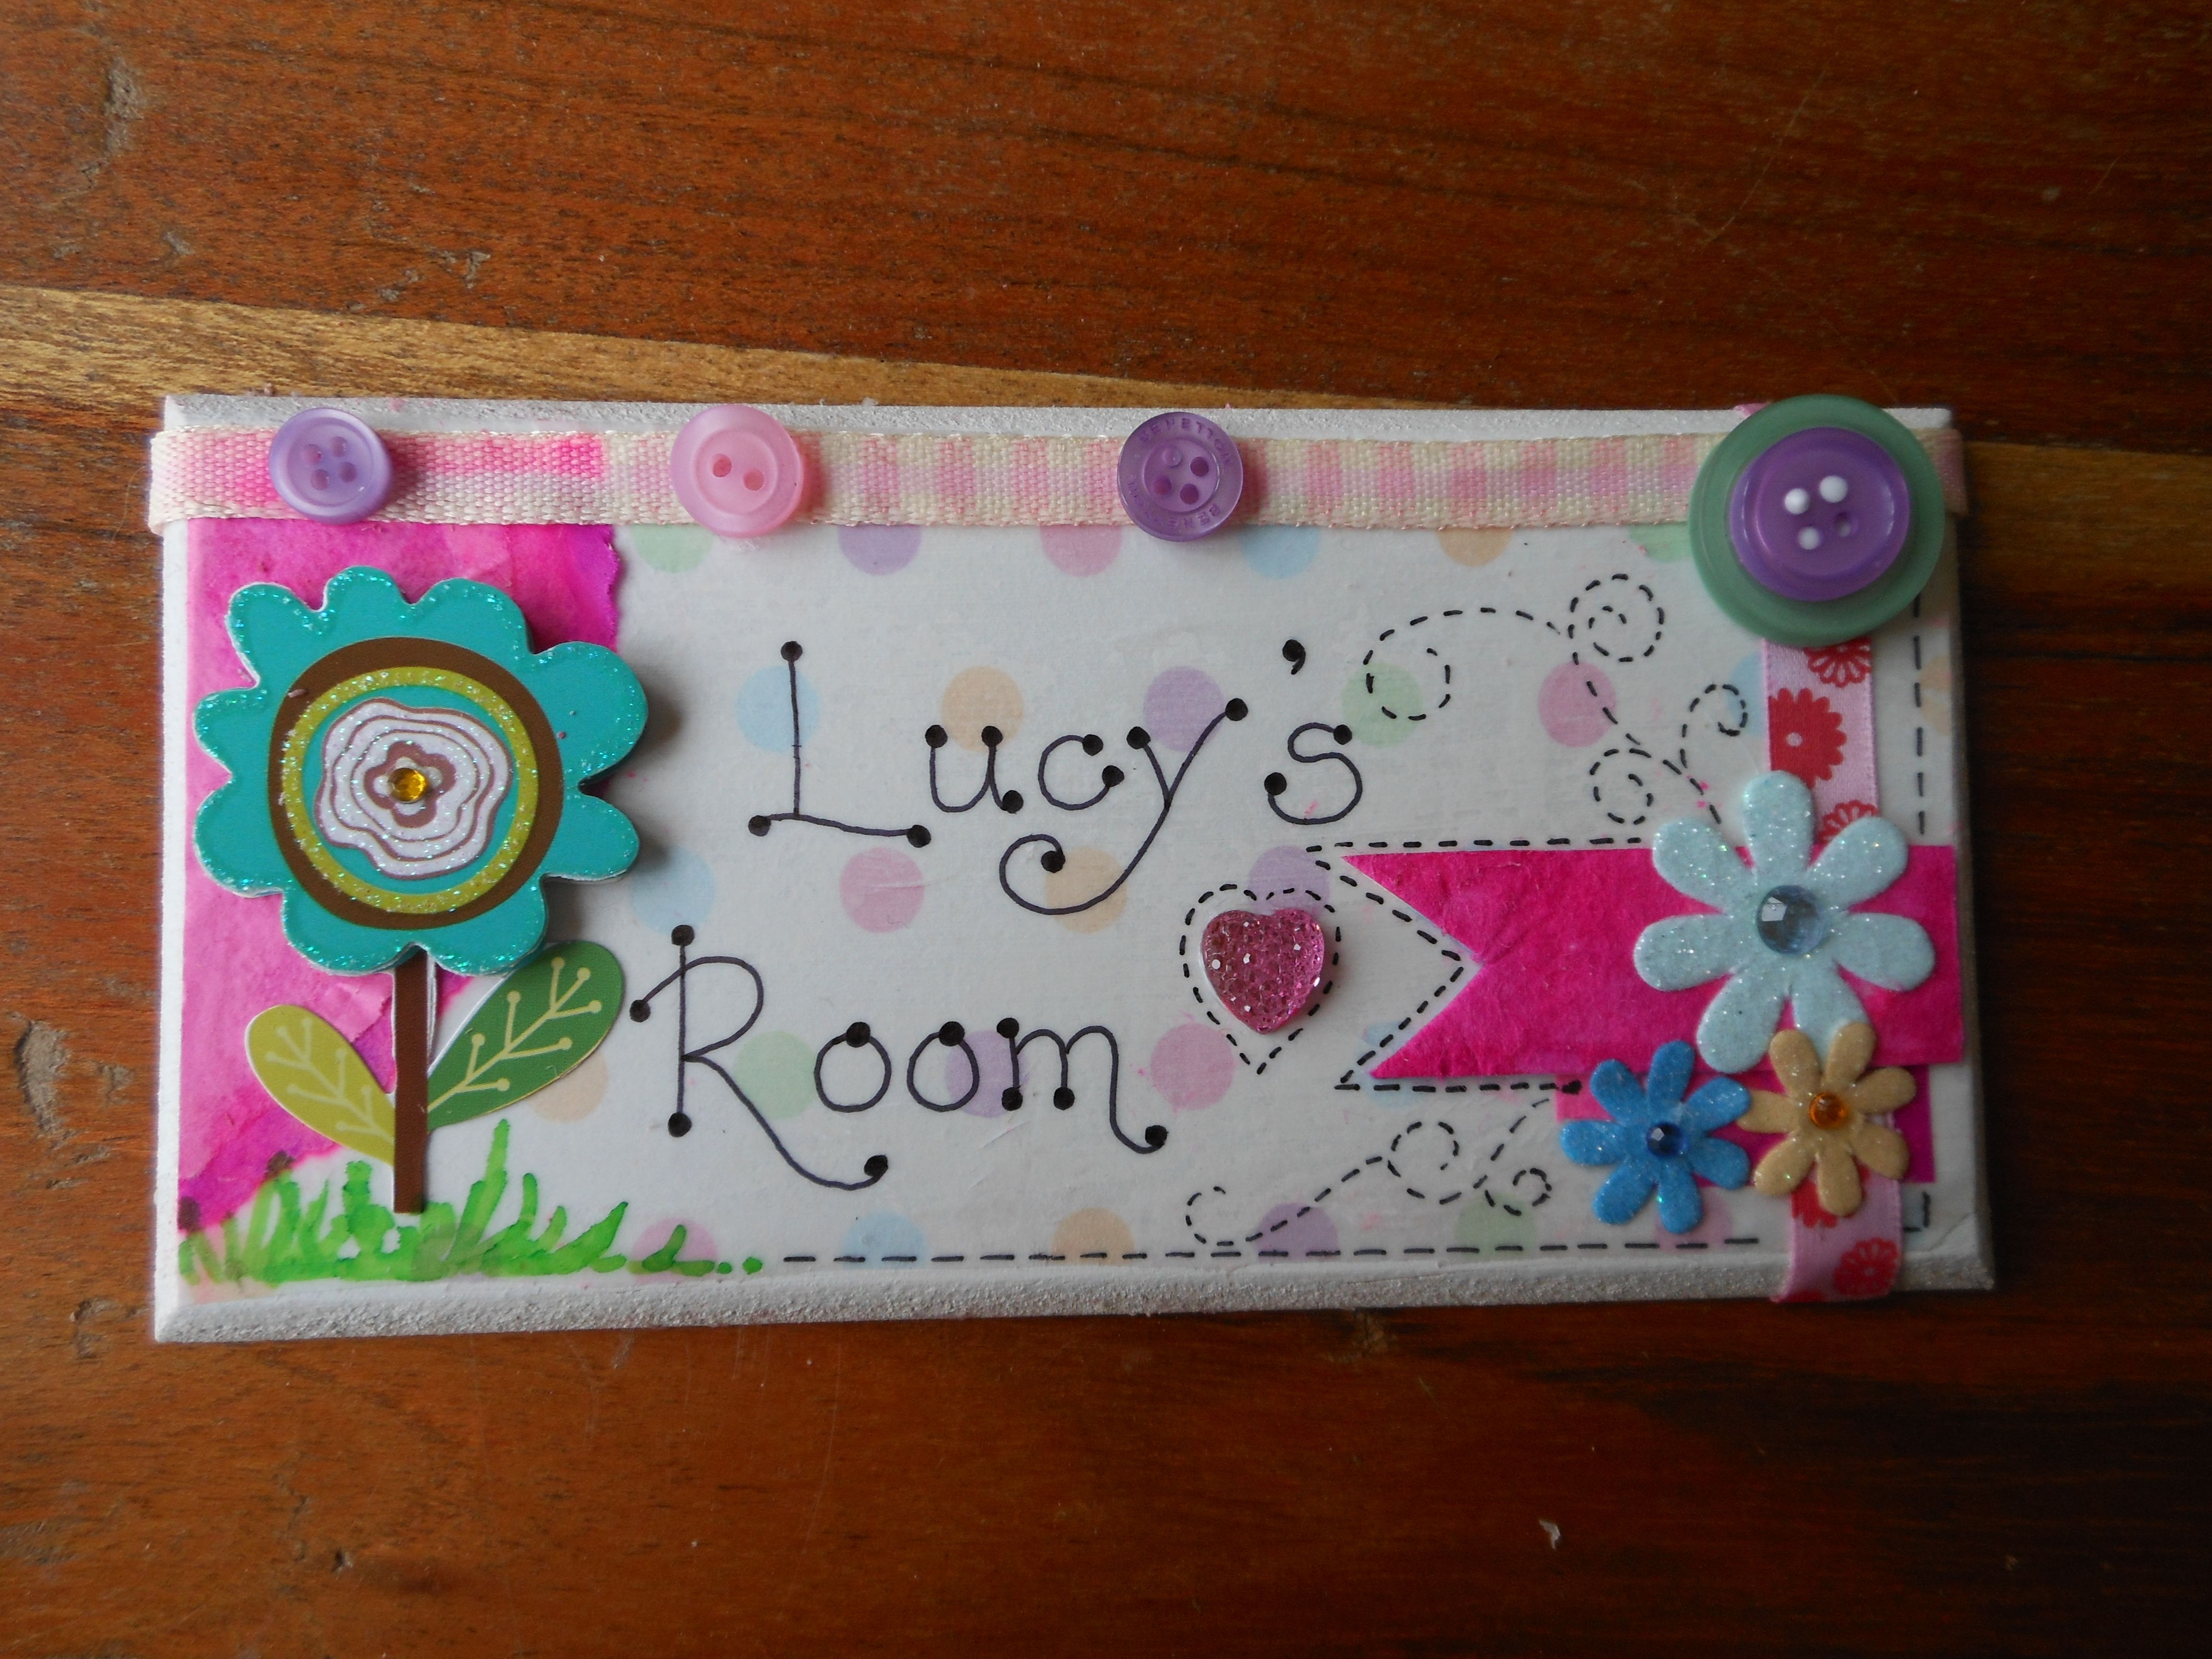 Bespoke Personalised Handmade Wooden Mdf Plaques Shabby Chic Door Plaques Manualidades Nombres En Madera Country Pintura En Madera